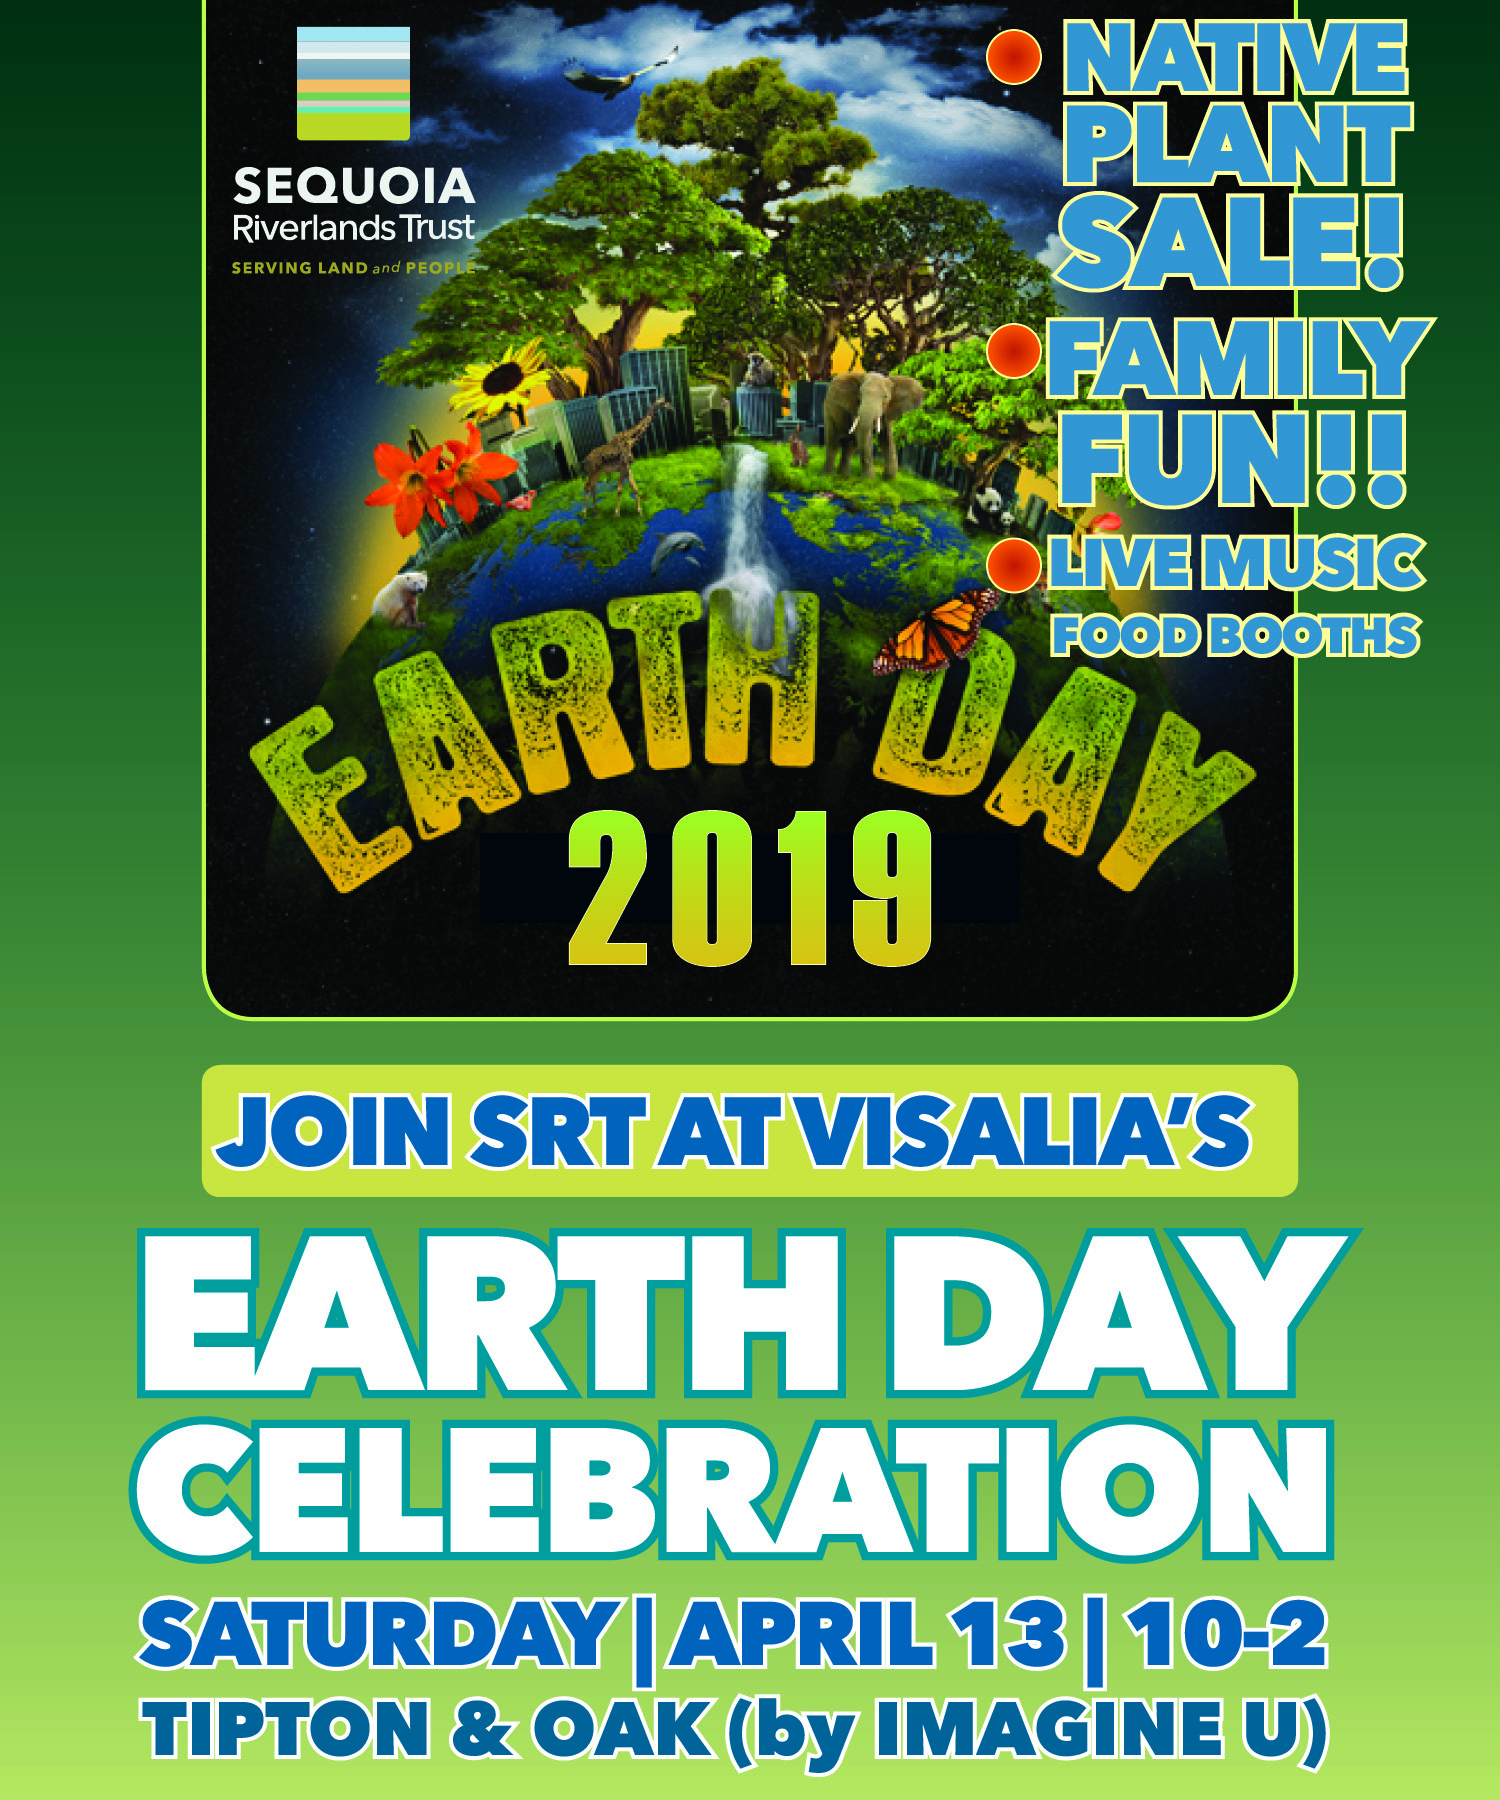 SRT at Visalia Earth Day event